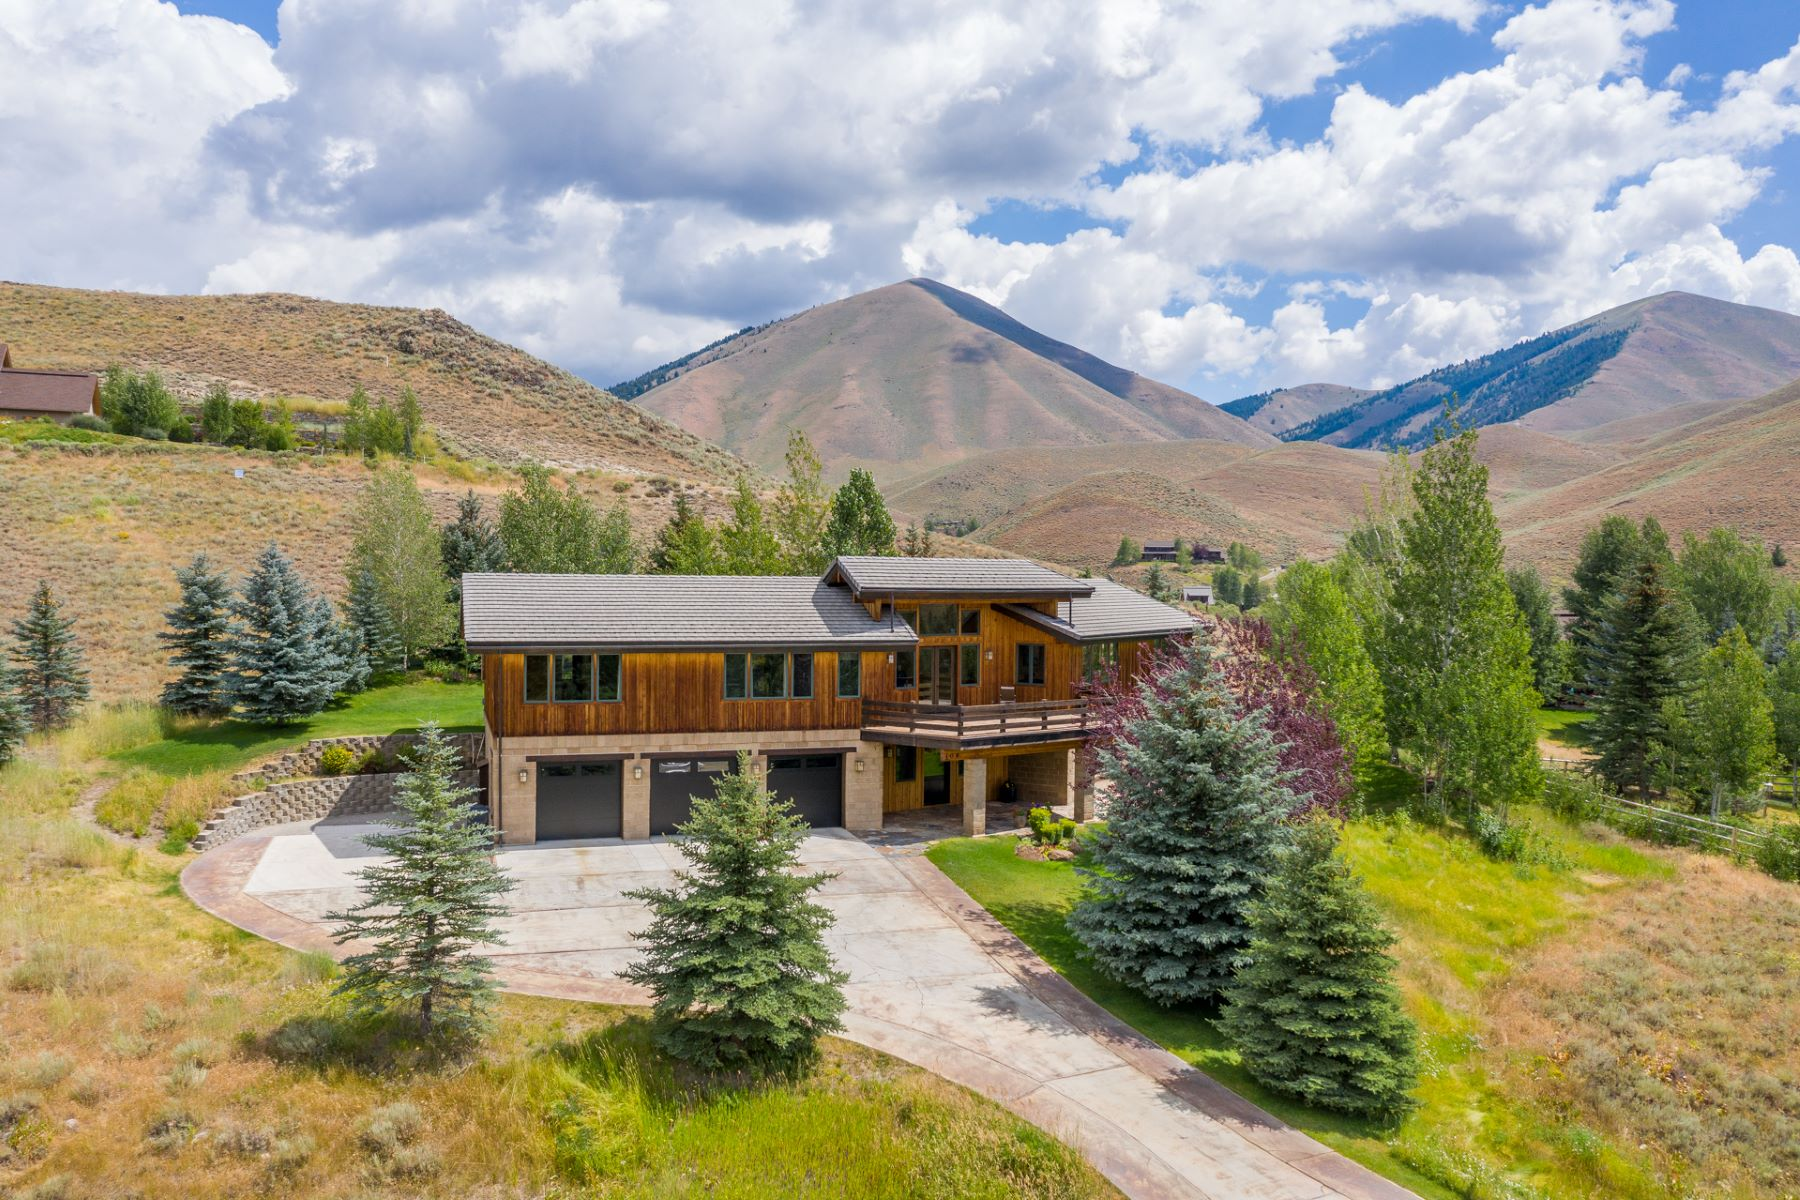 Single Family Homes for Sale at Top of the World Views 106 Sitting Bull Drive Hailey, Idaho 83333 United States